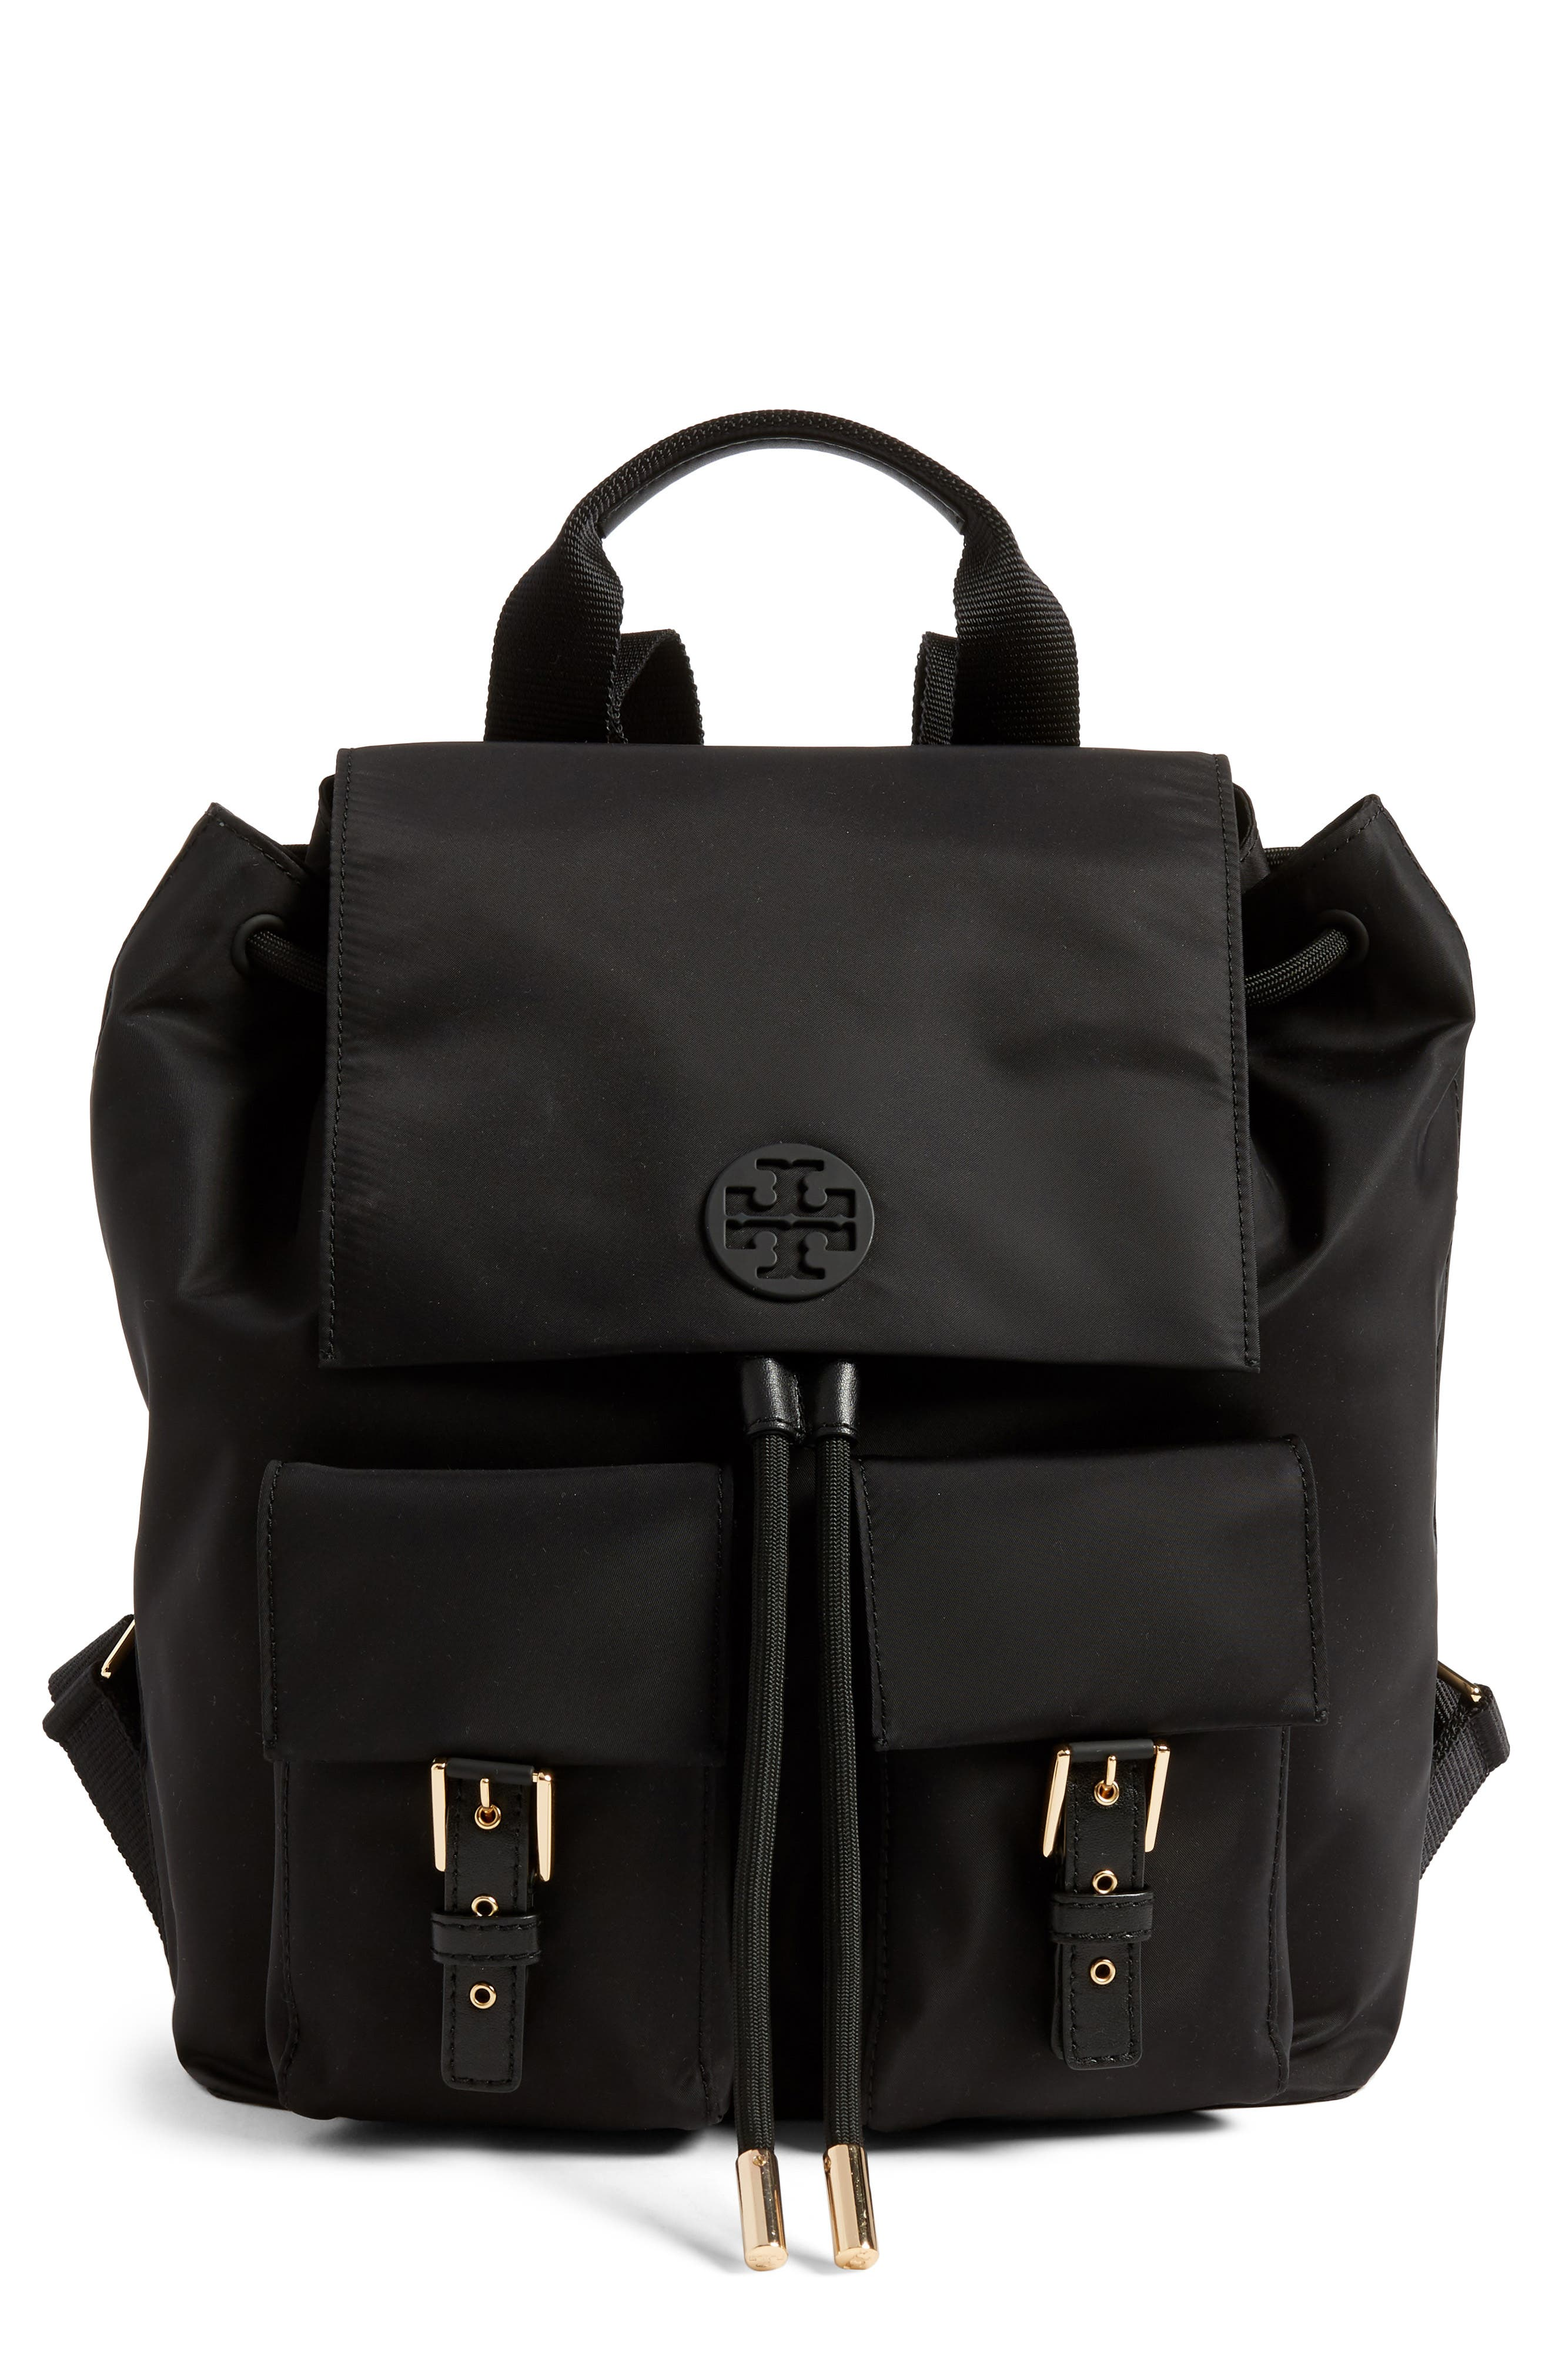 TORY BURCH, Tilda Nylon Backpack, Main thumbnail 1, color, BLACK